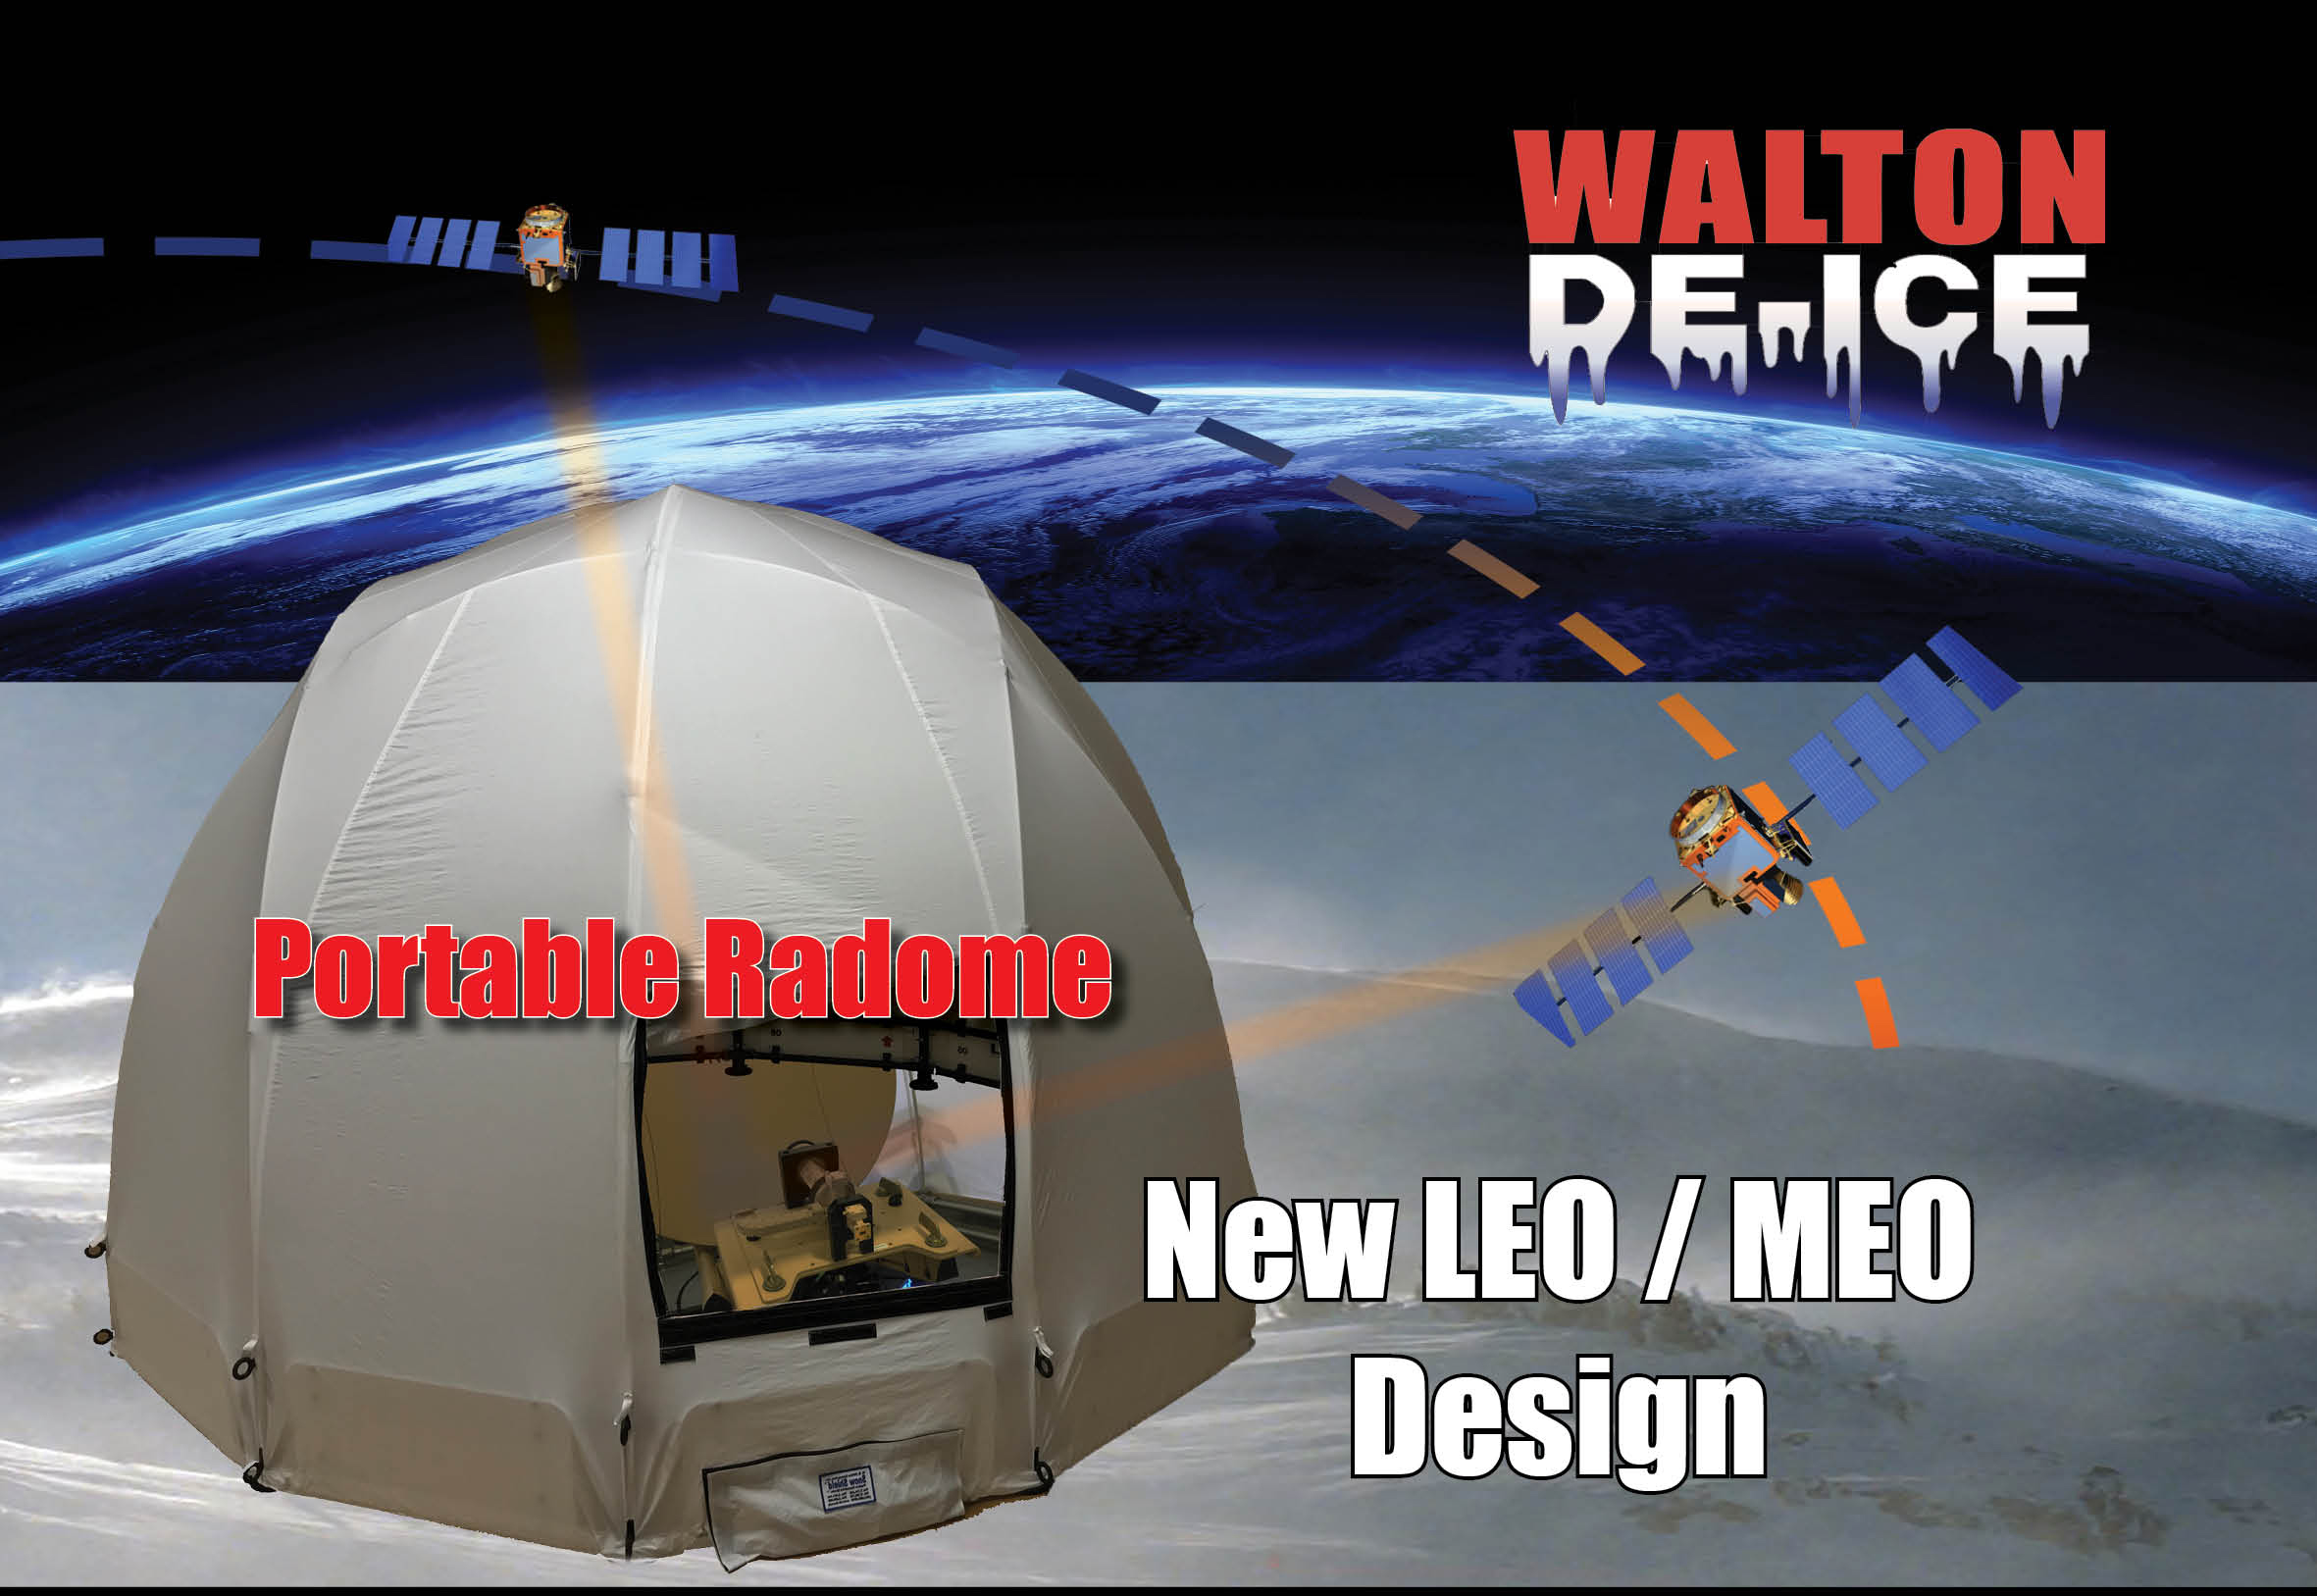 Walton Portable Radome for LEO / MEO